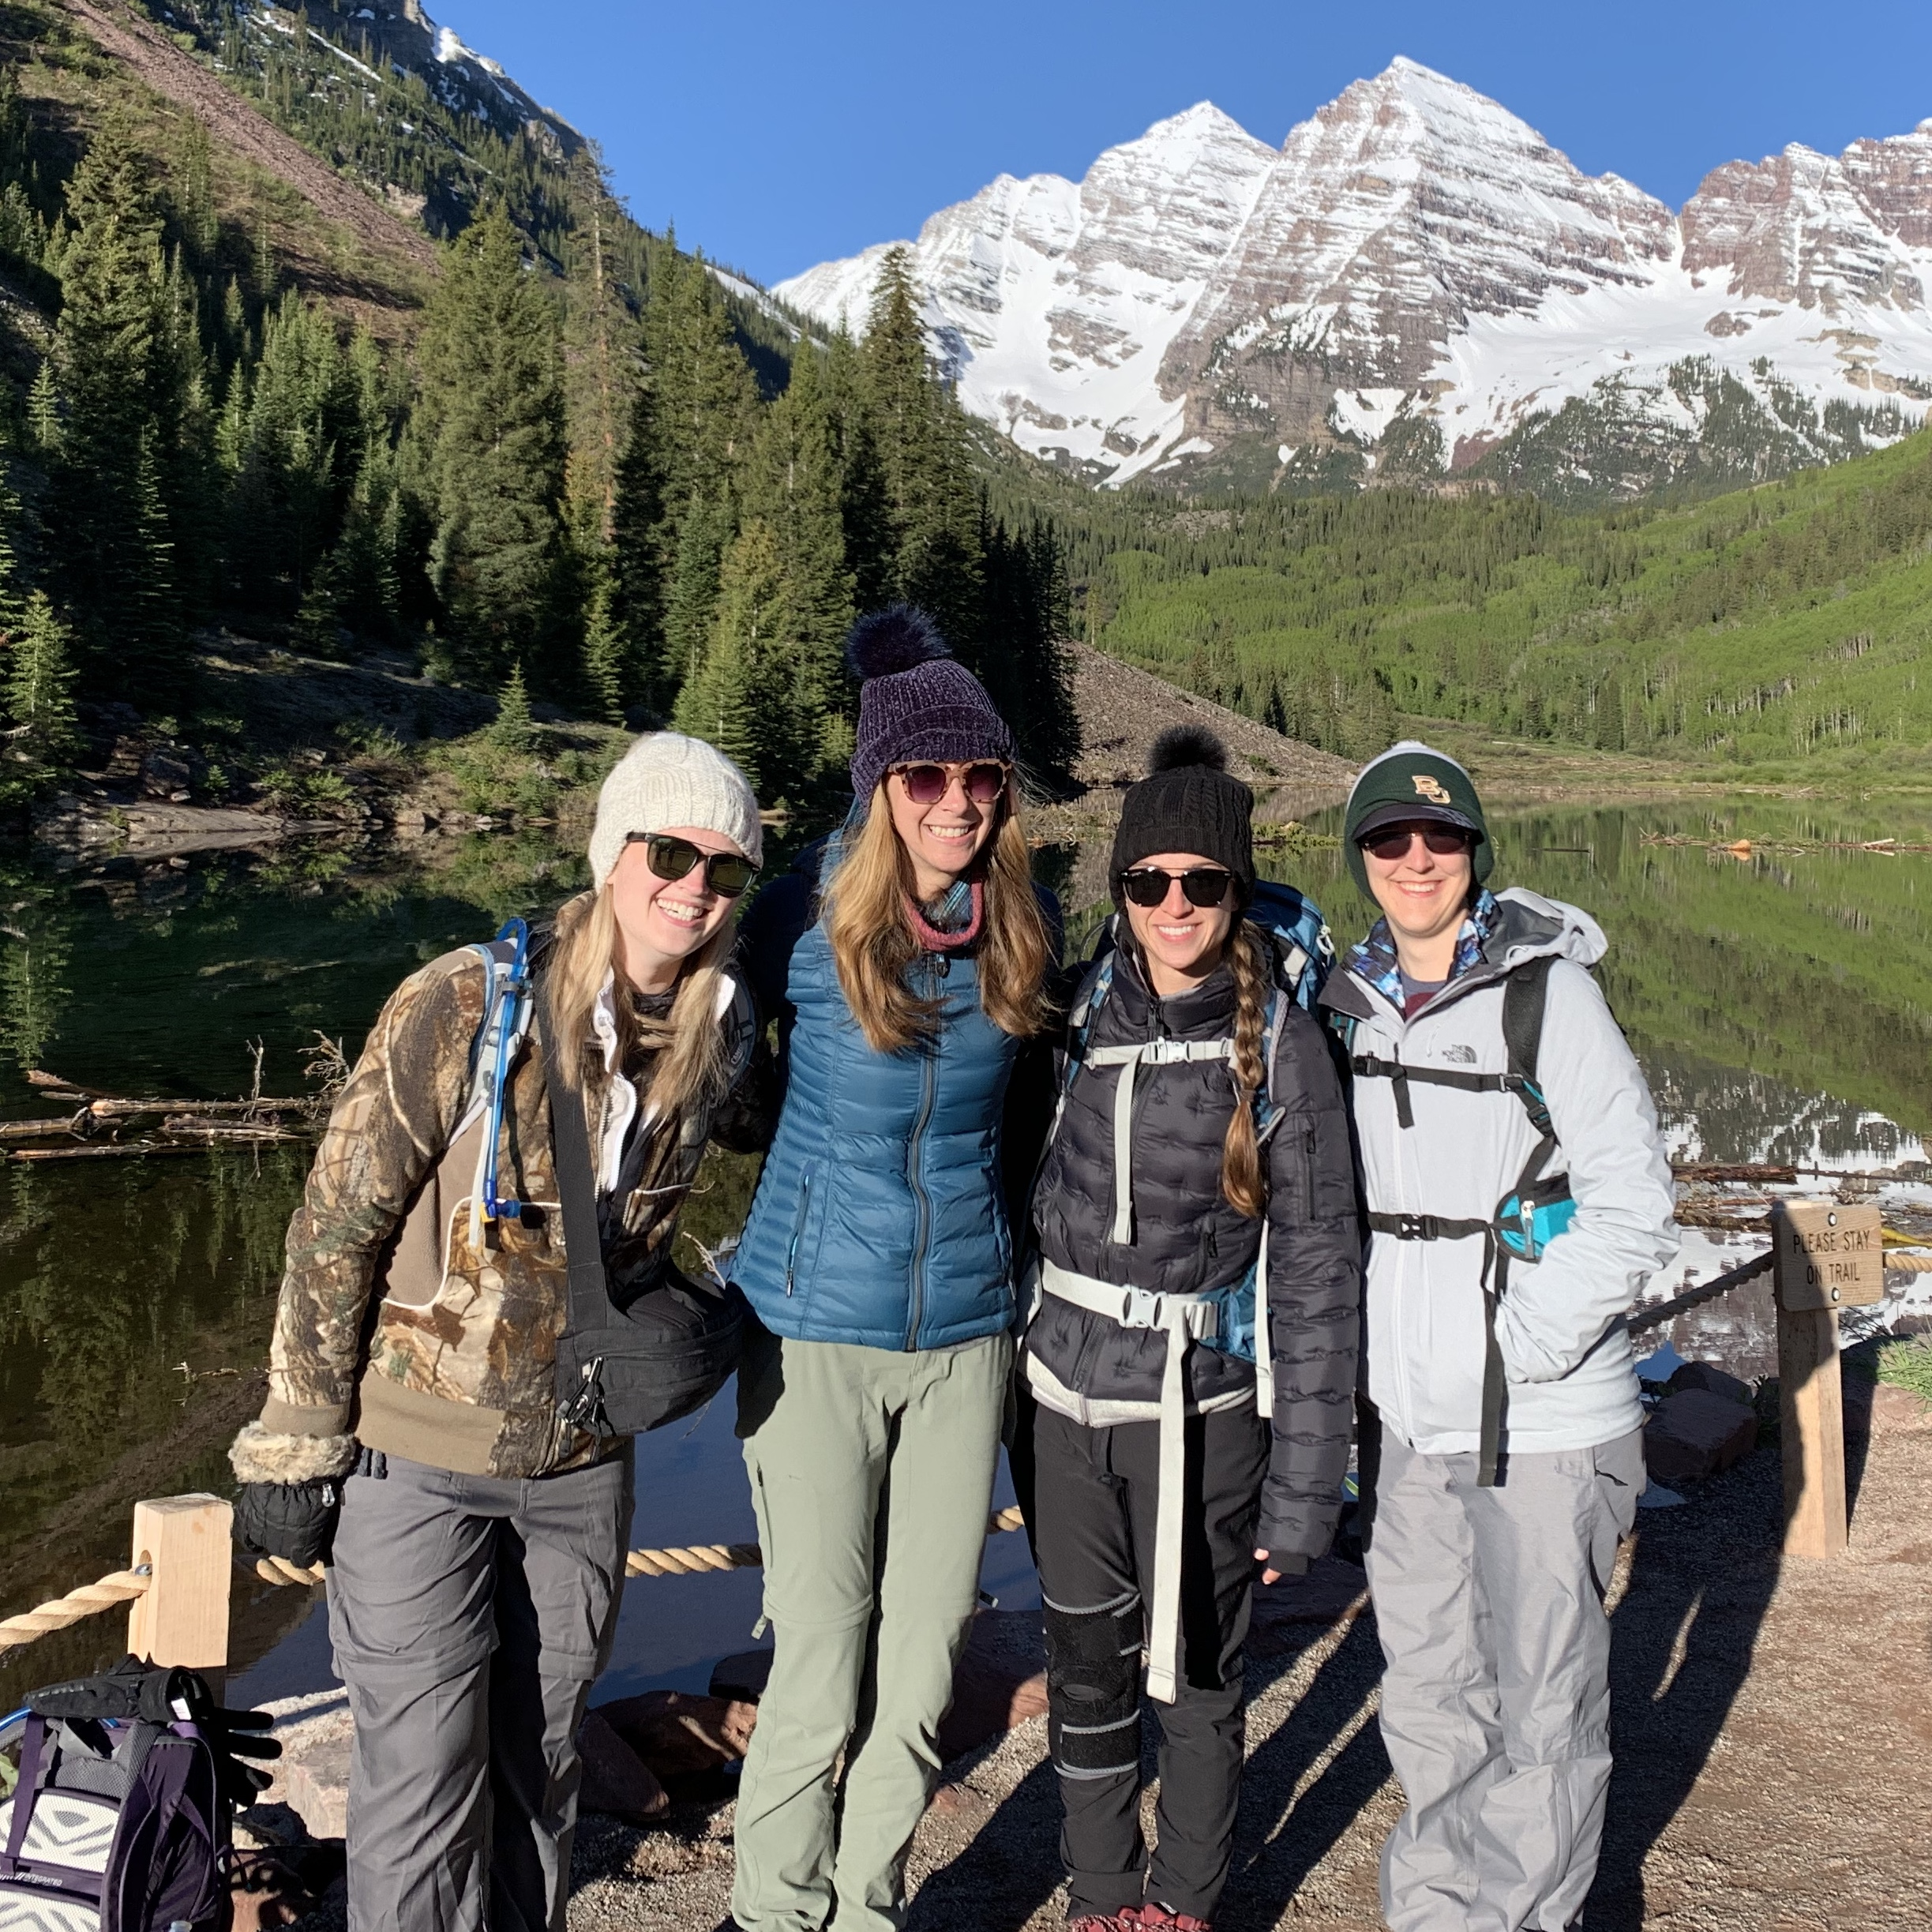 Hiking near Maroon Bells